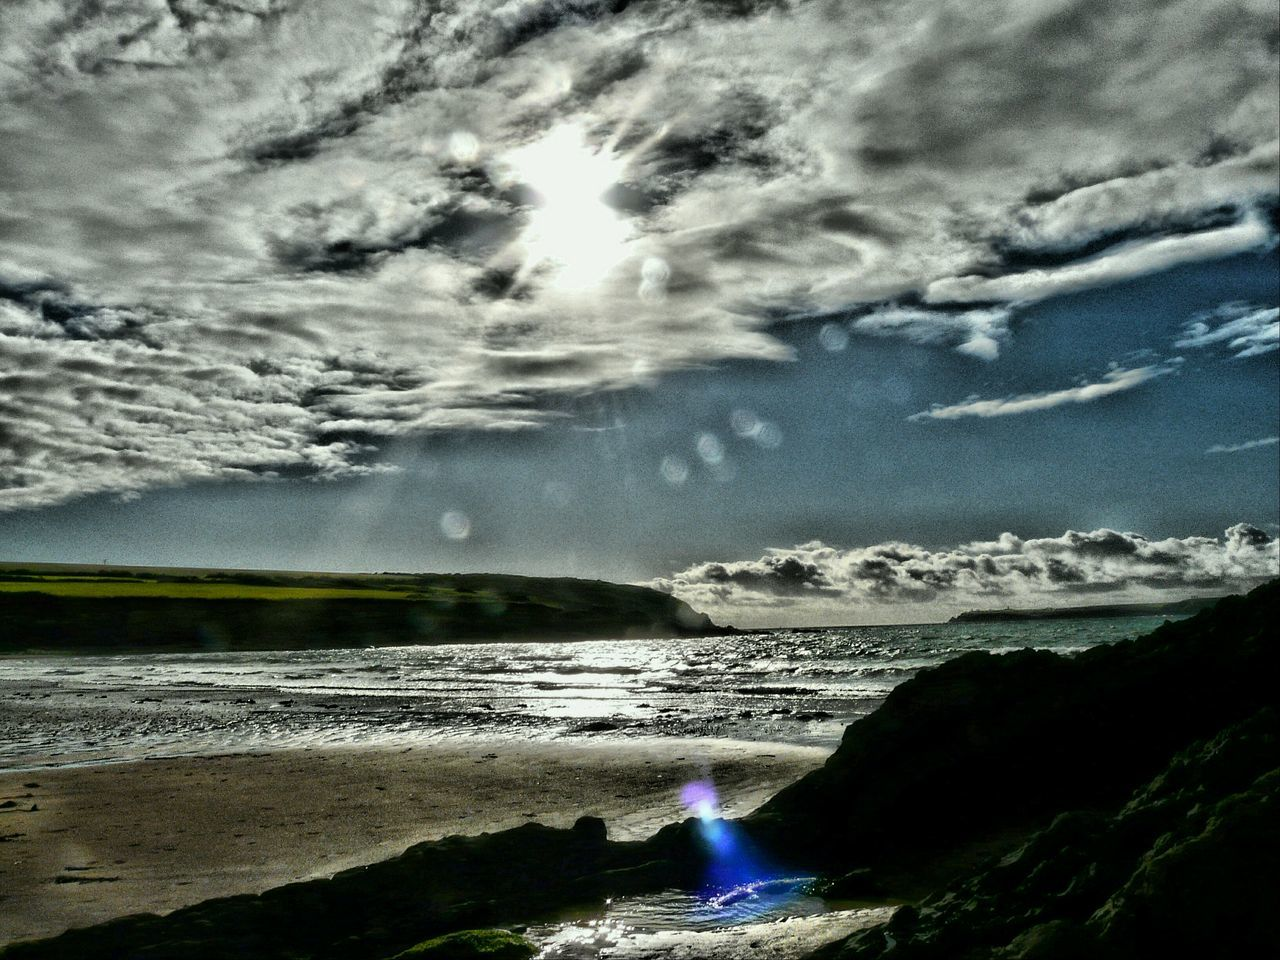 Summer Memories 🌄 Nature On Your Doorstep Angle Pembrokeshire Sparkling Sea Sunrays On Water Edit Photo Sea Sky Water